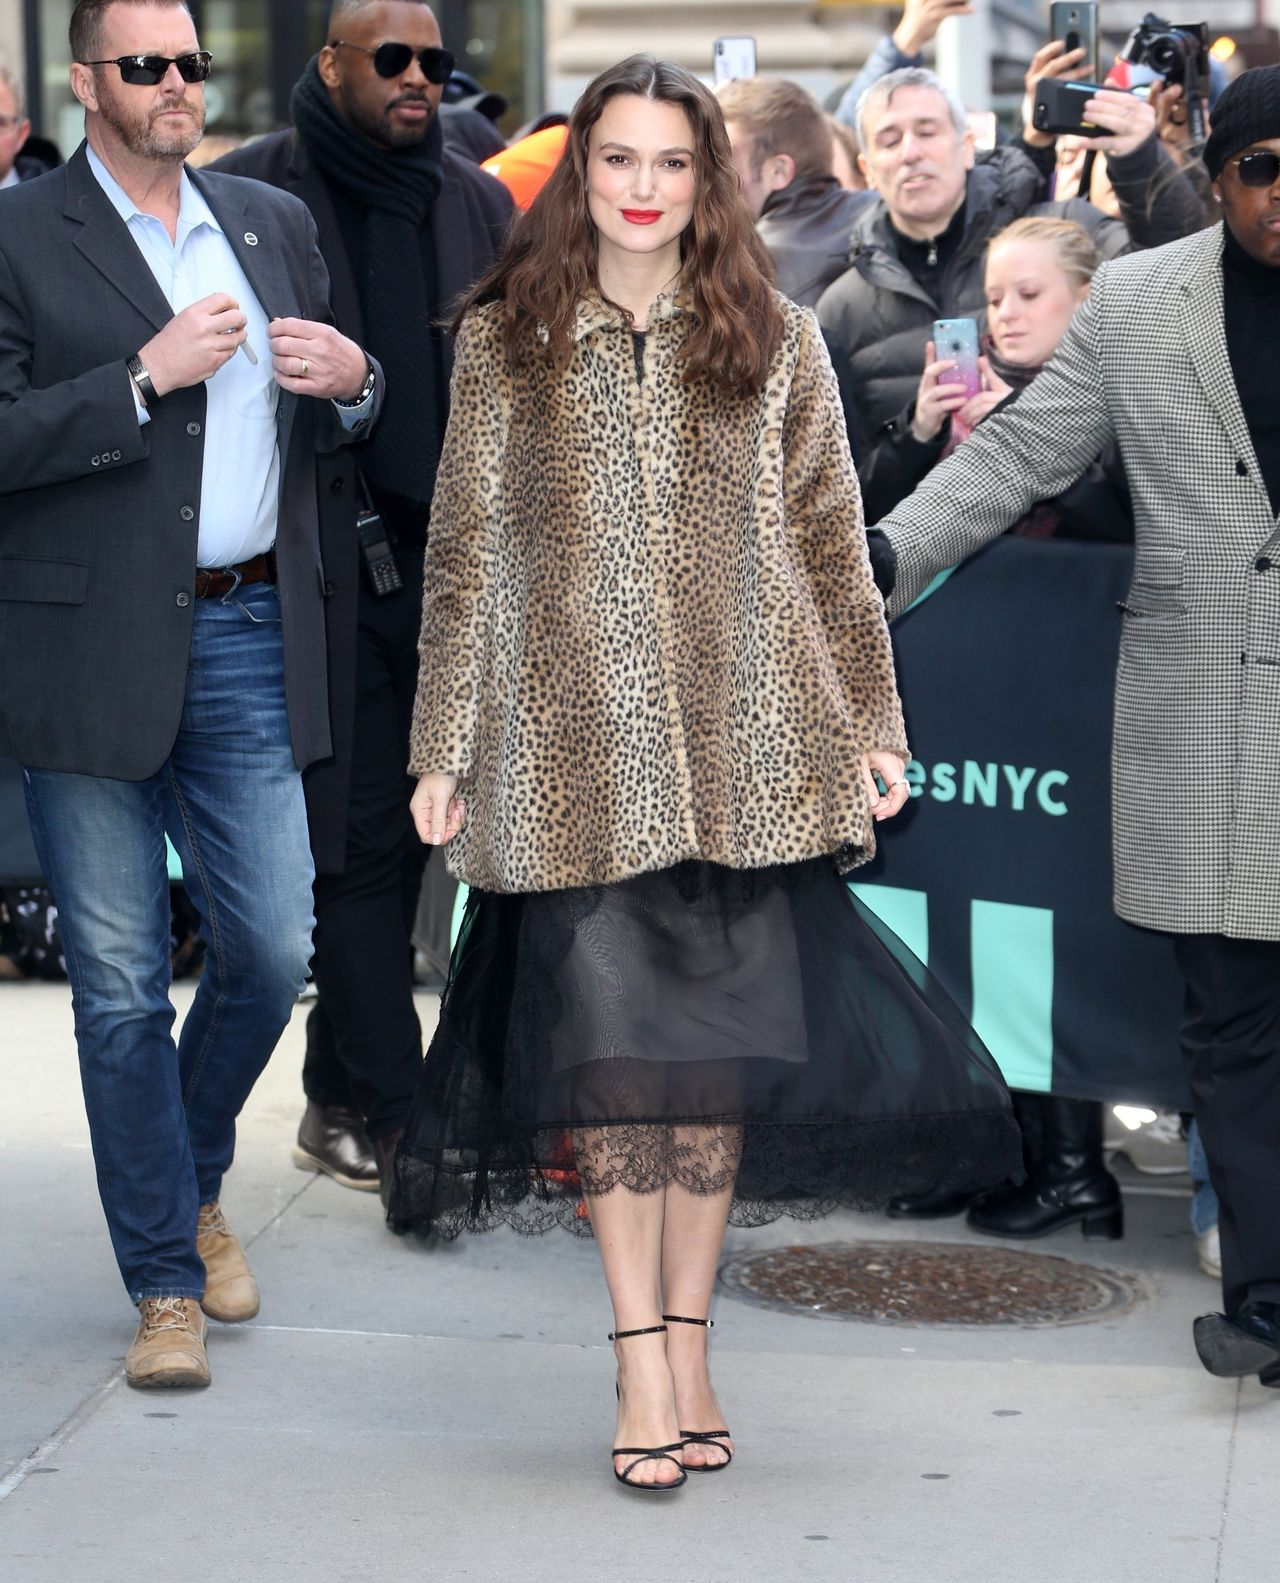 Keira Knightley arrives to AOL Build this afternoon looking stunning Keira Knightley